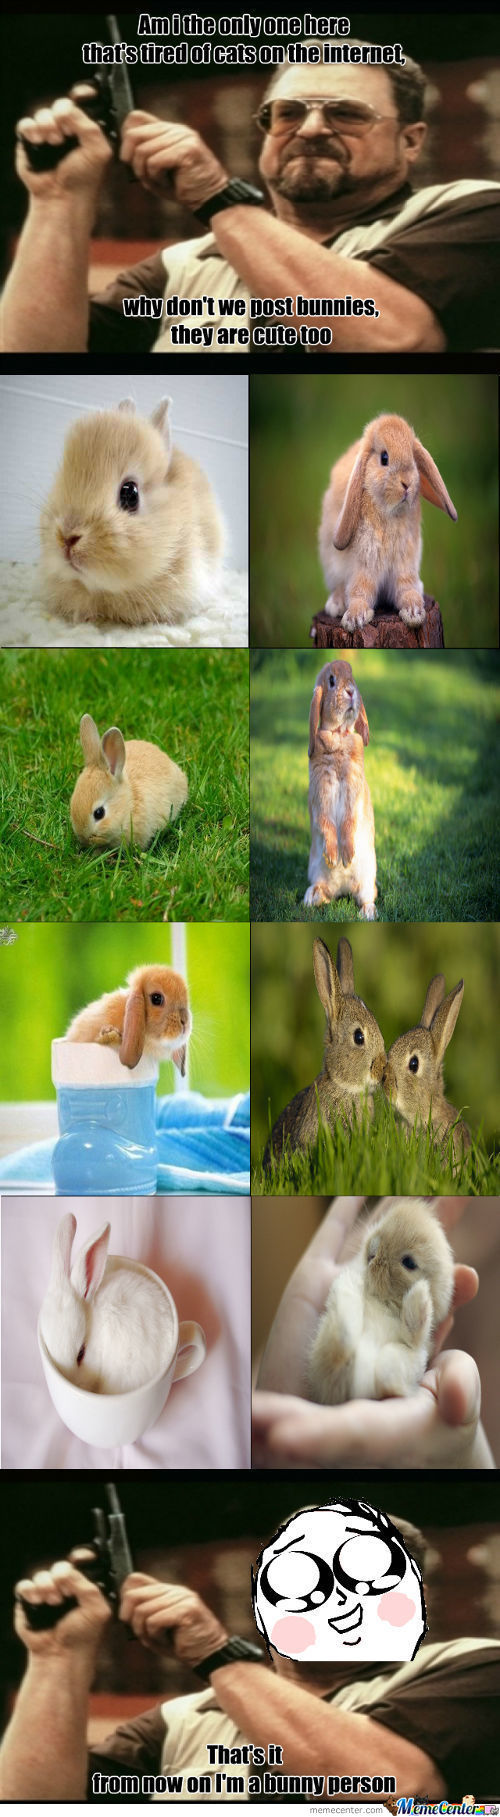 Bunnies Are Cute Too!